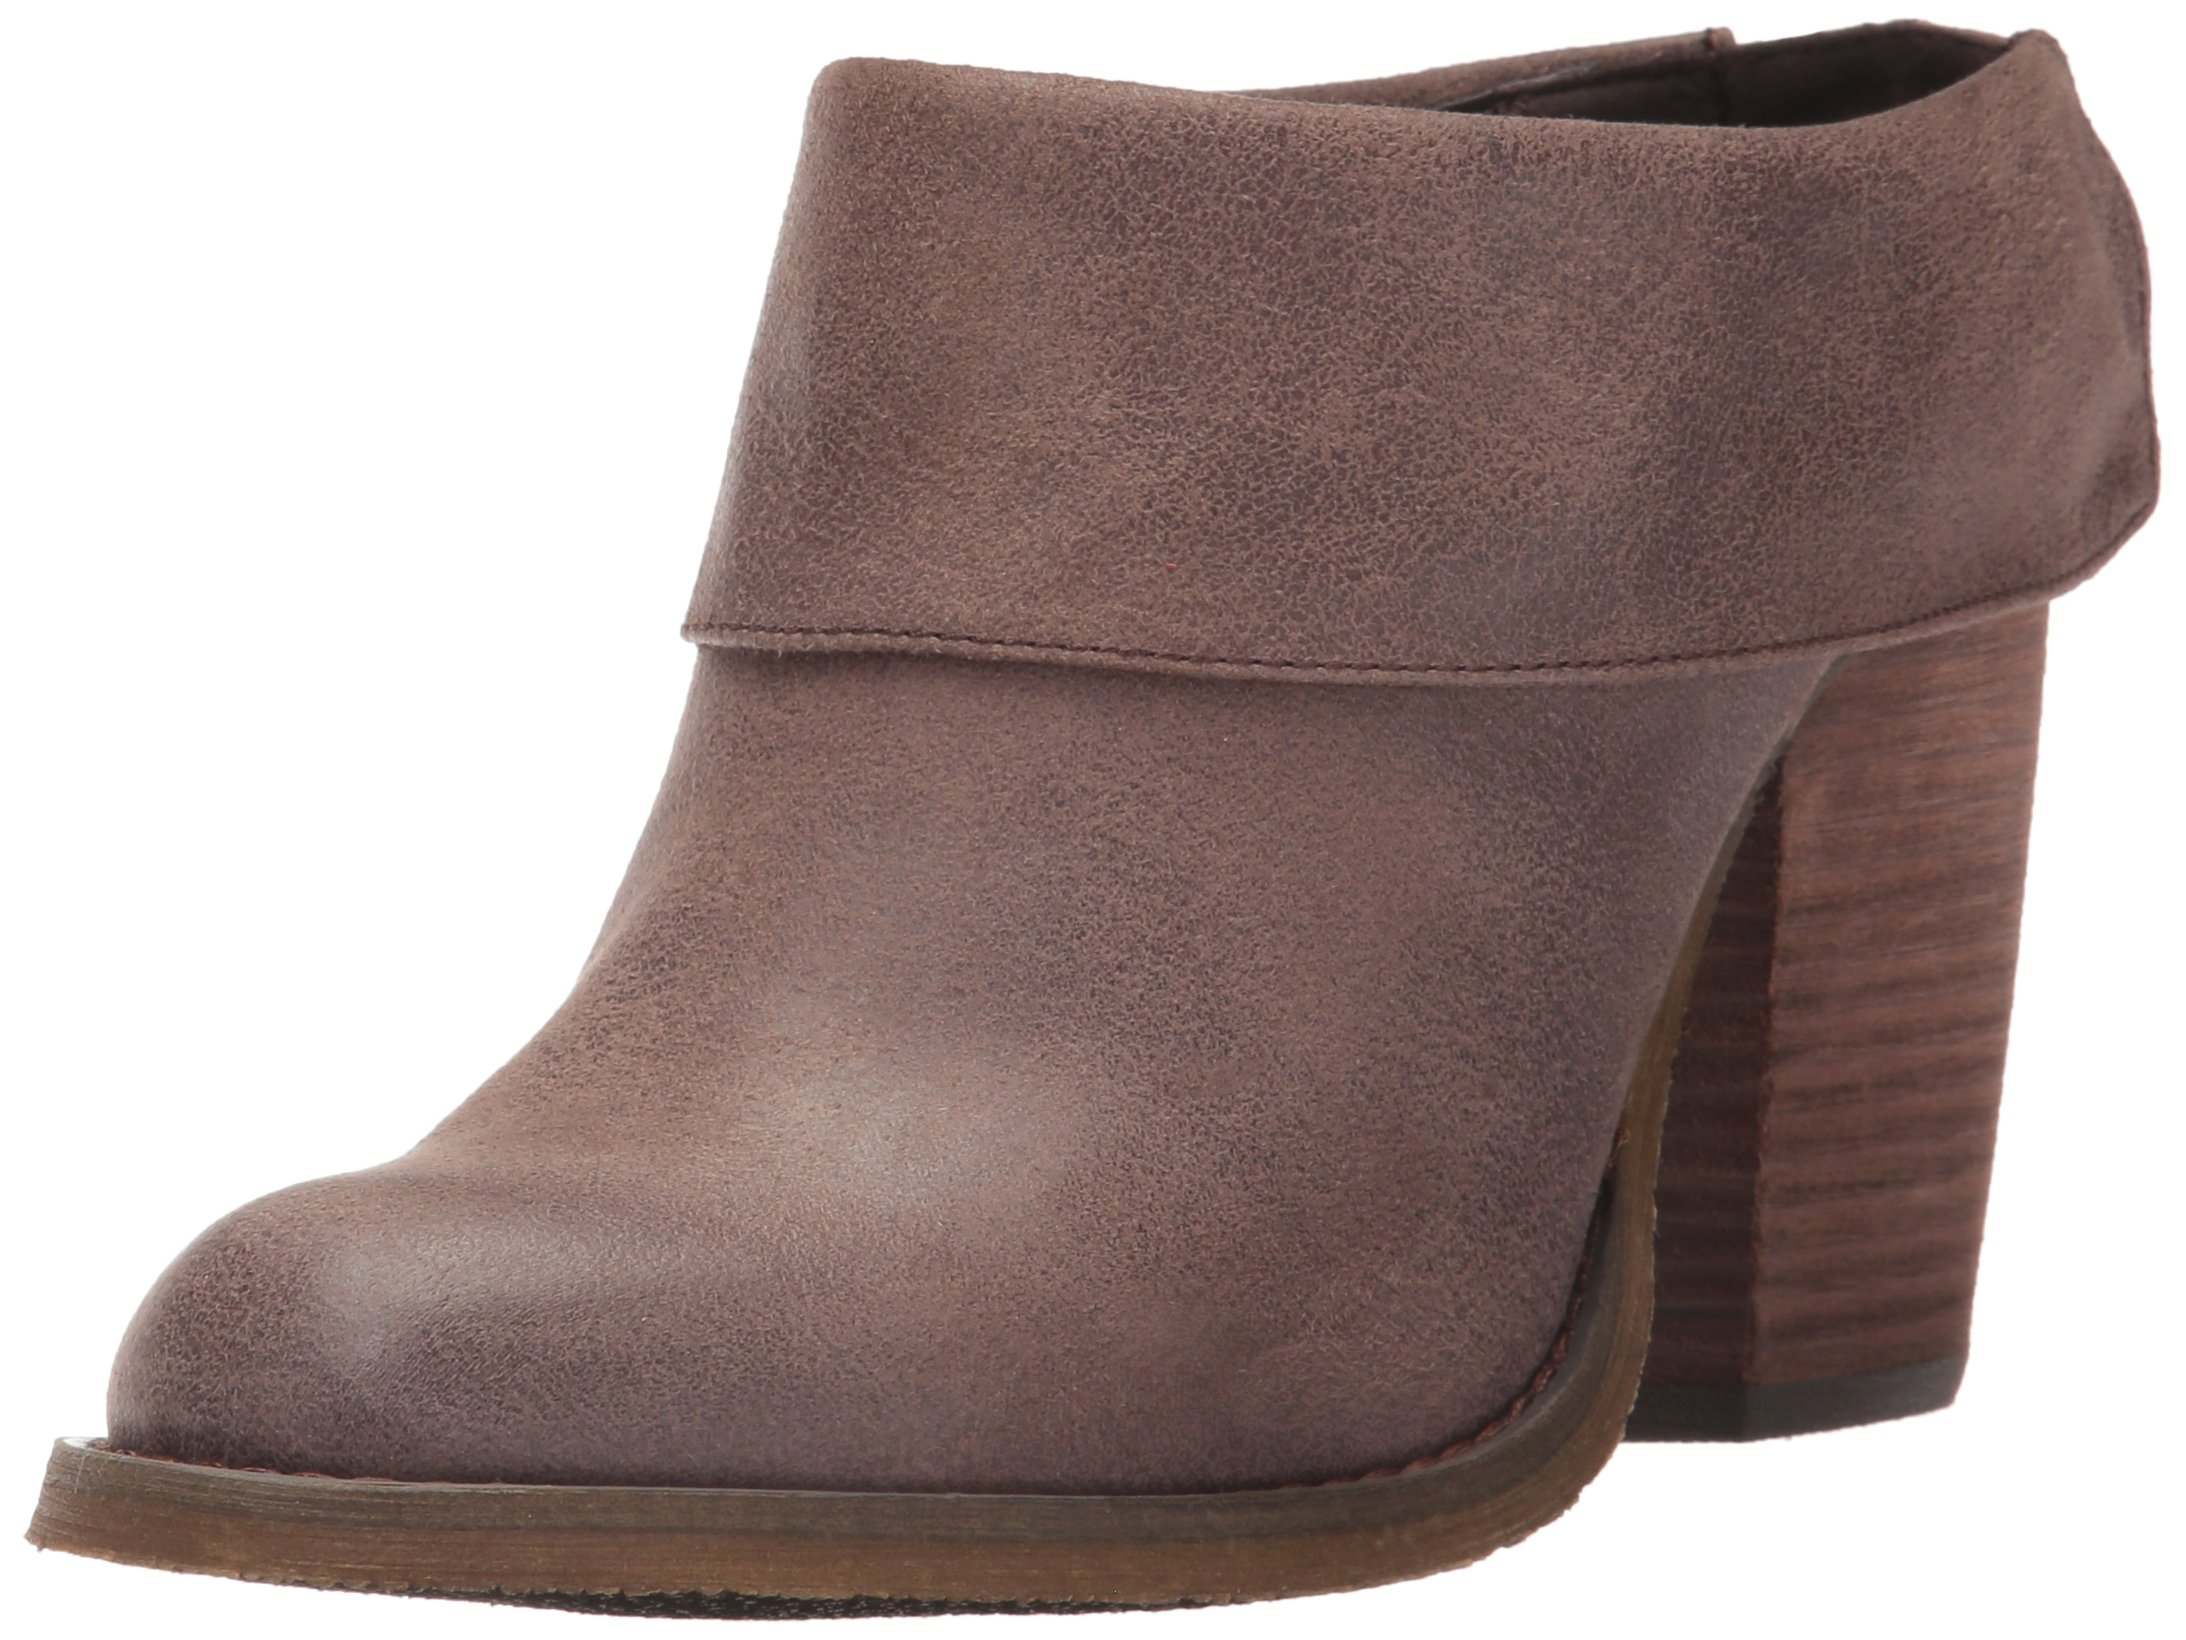 Sbicca Women's Vitalo Mule, Taupe, 7.5 B US